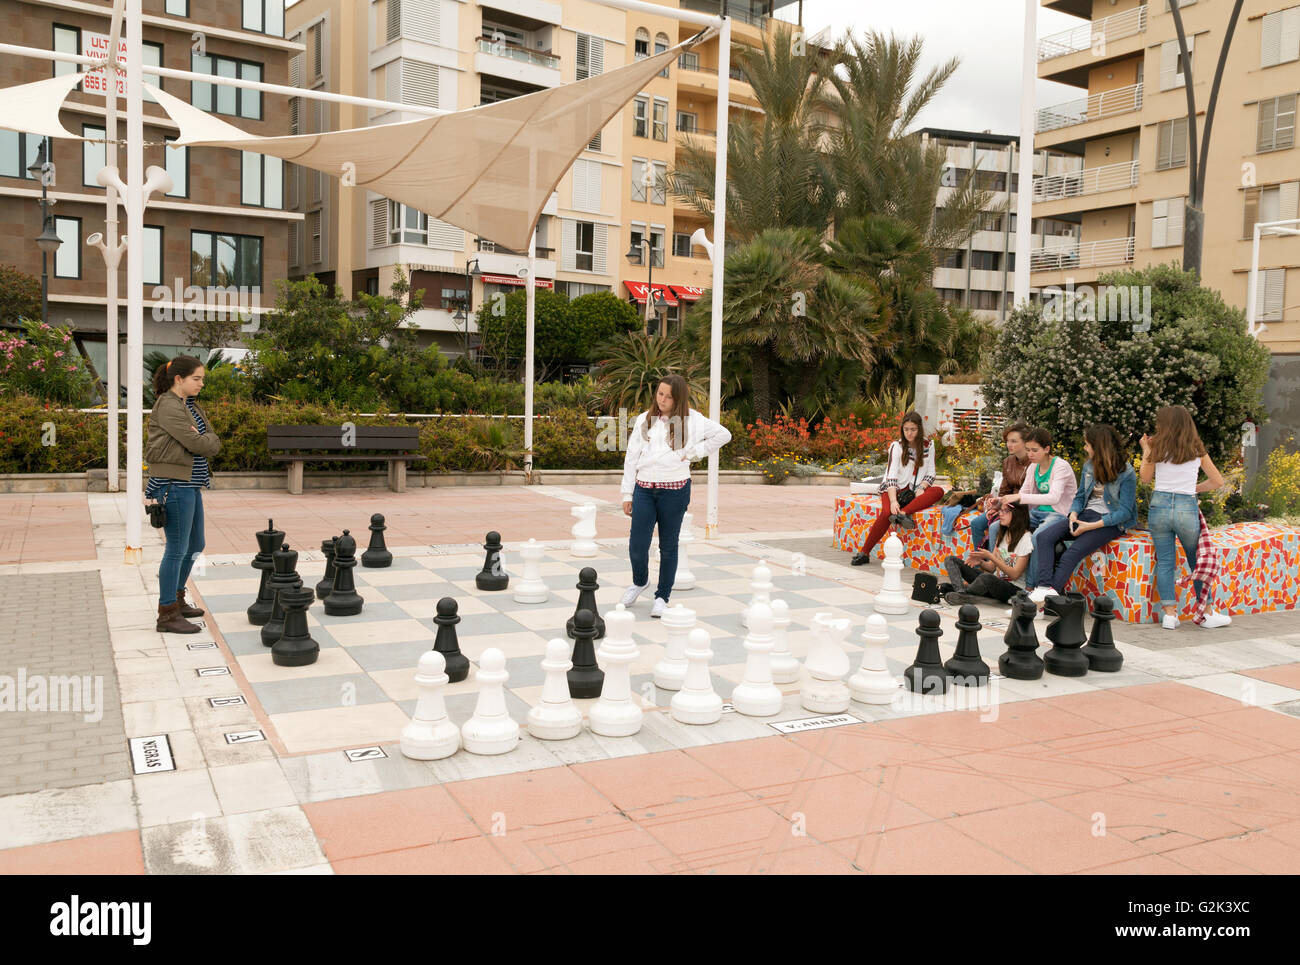 Spanish teenage girls playing  chess on a giant chessboard in the street, Estepona, Andalusia, Spain Europe - Stock Image